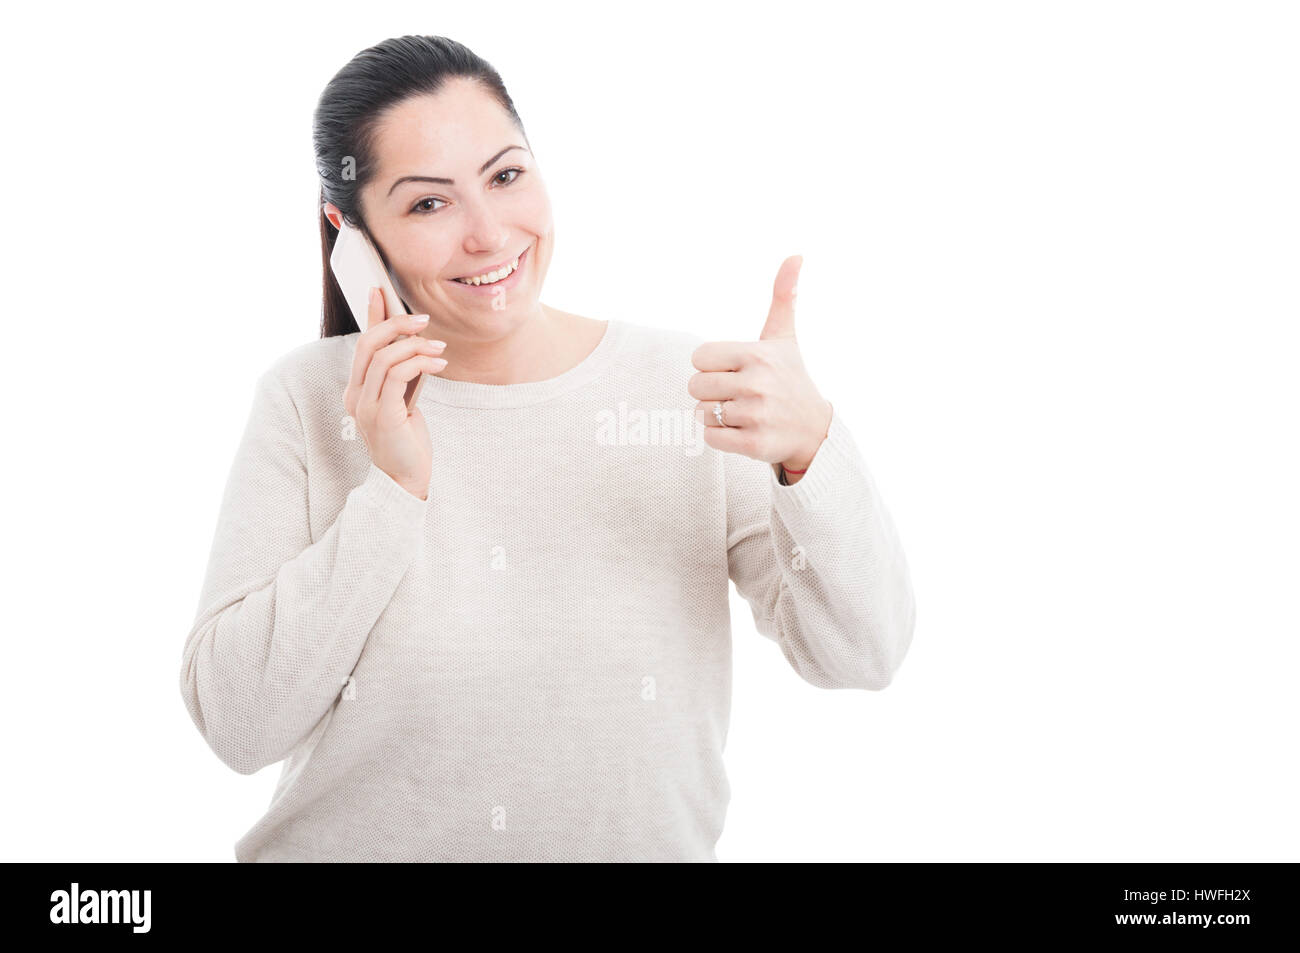 Beautiful happy woman showing thumb up gesture while talking on cellphone on white background - Stock Image